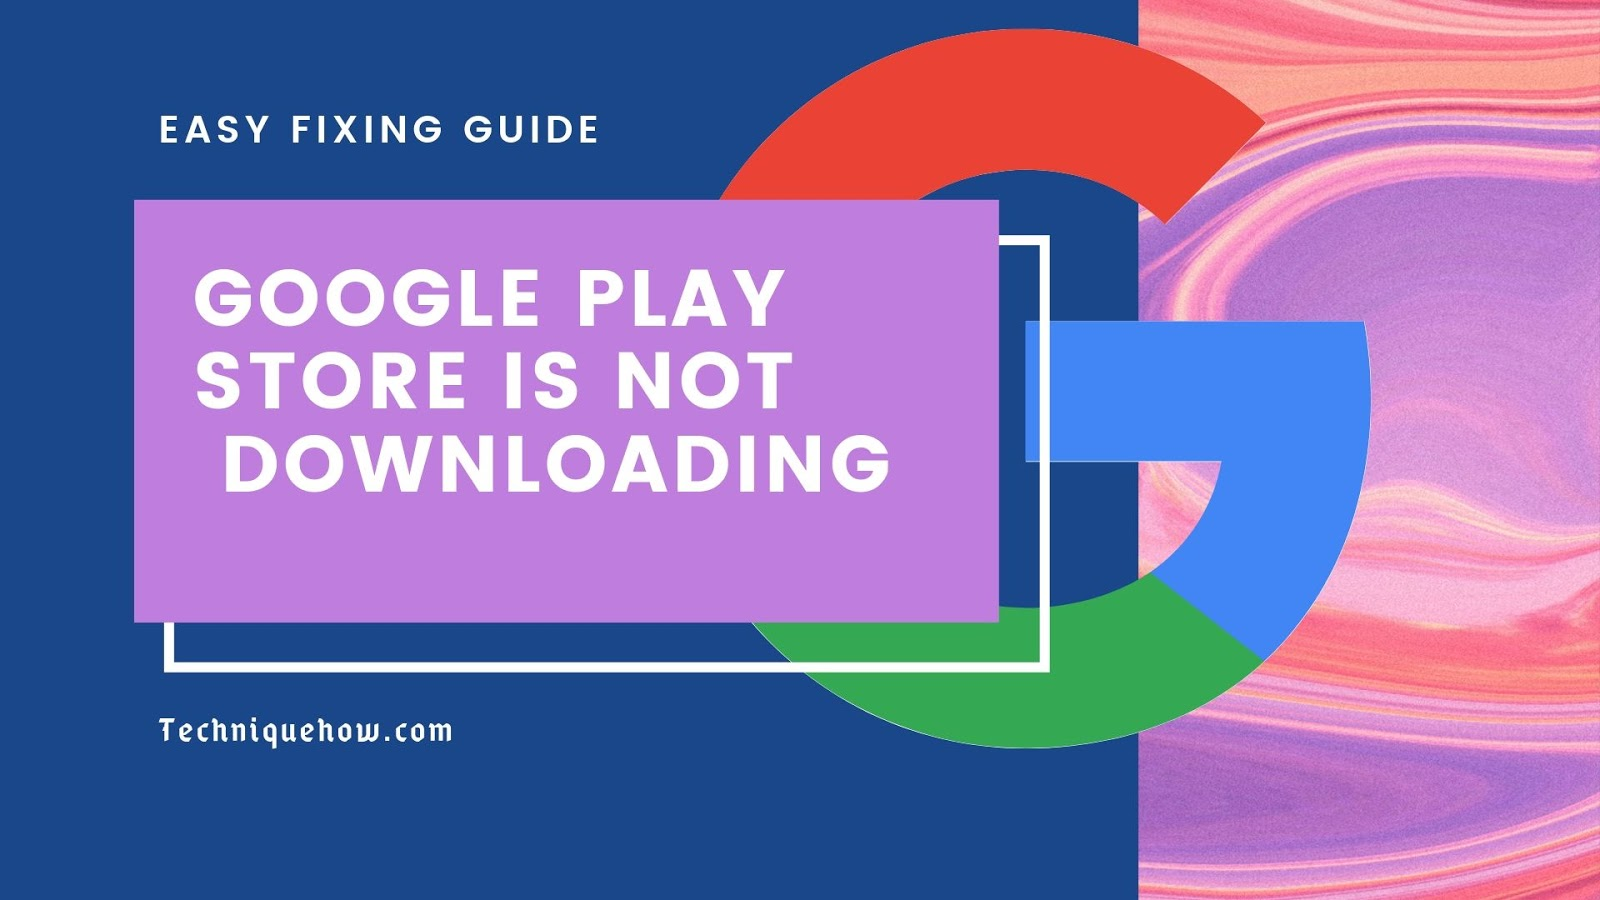 play store is not downloading